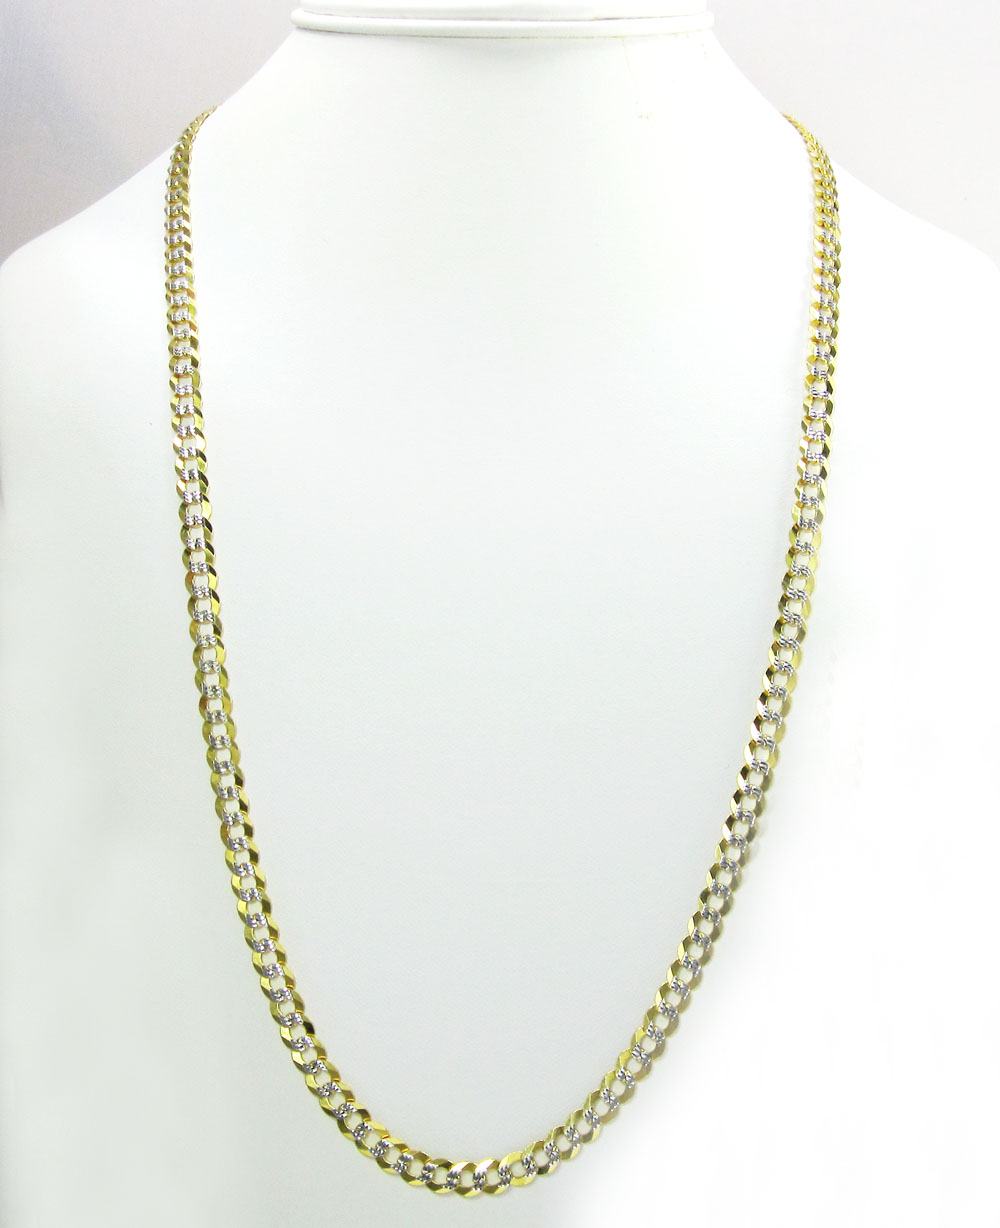 10k yellow gold solid diamond cut cuban chain 18-40 inch 5.7mm